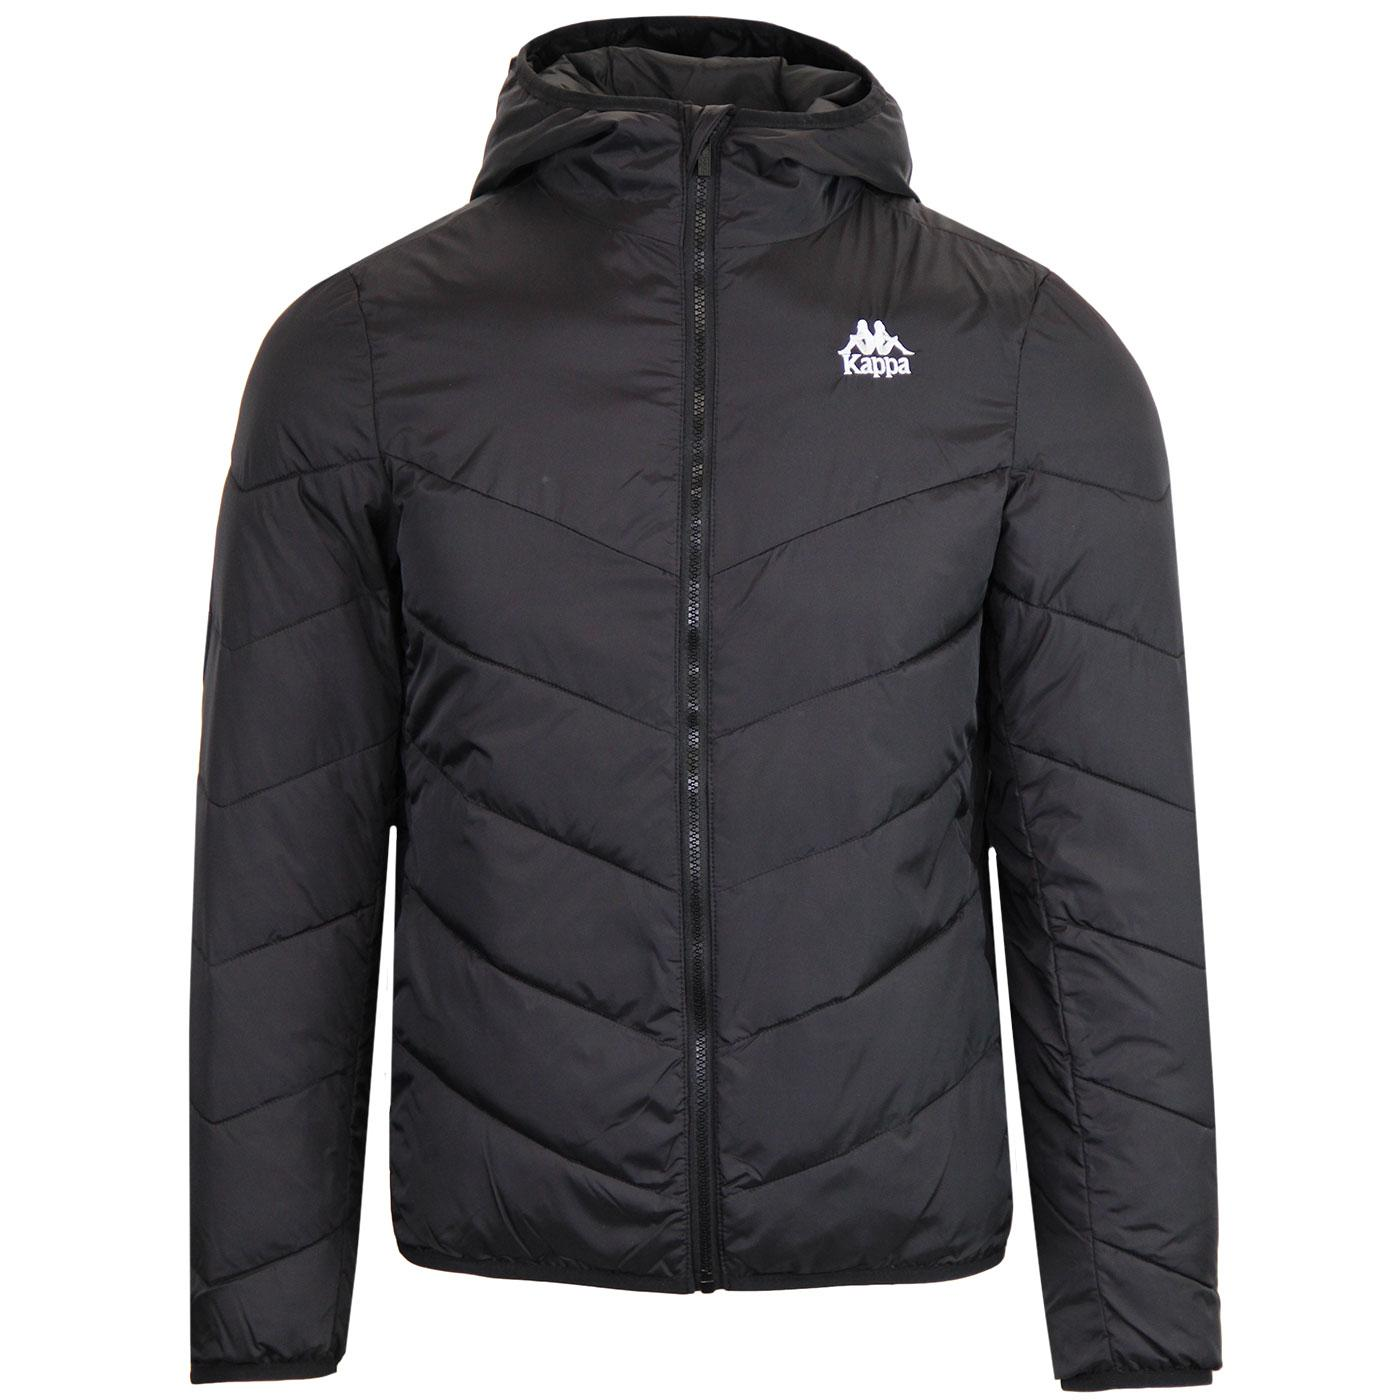 Amarit KAPPA Retro 80s Hooded Quilted Jacket BLACK